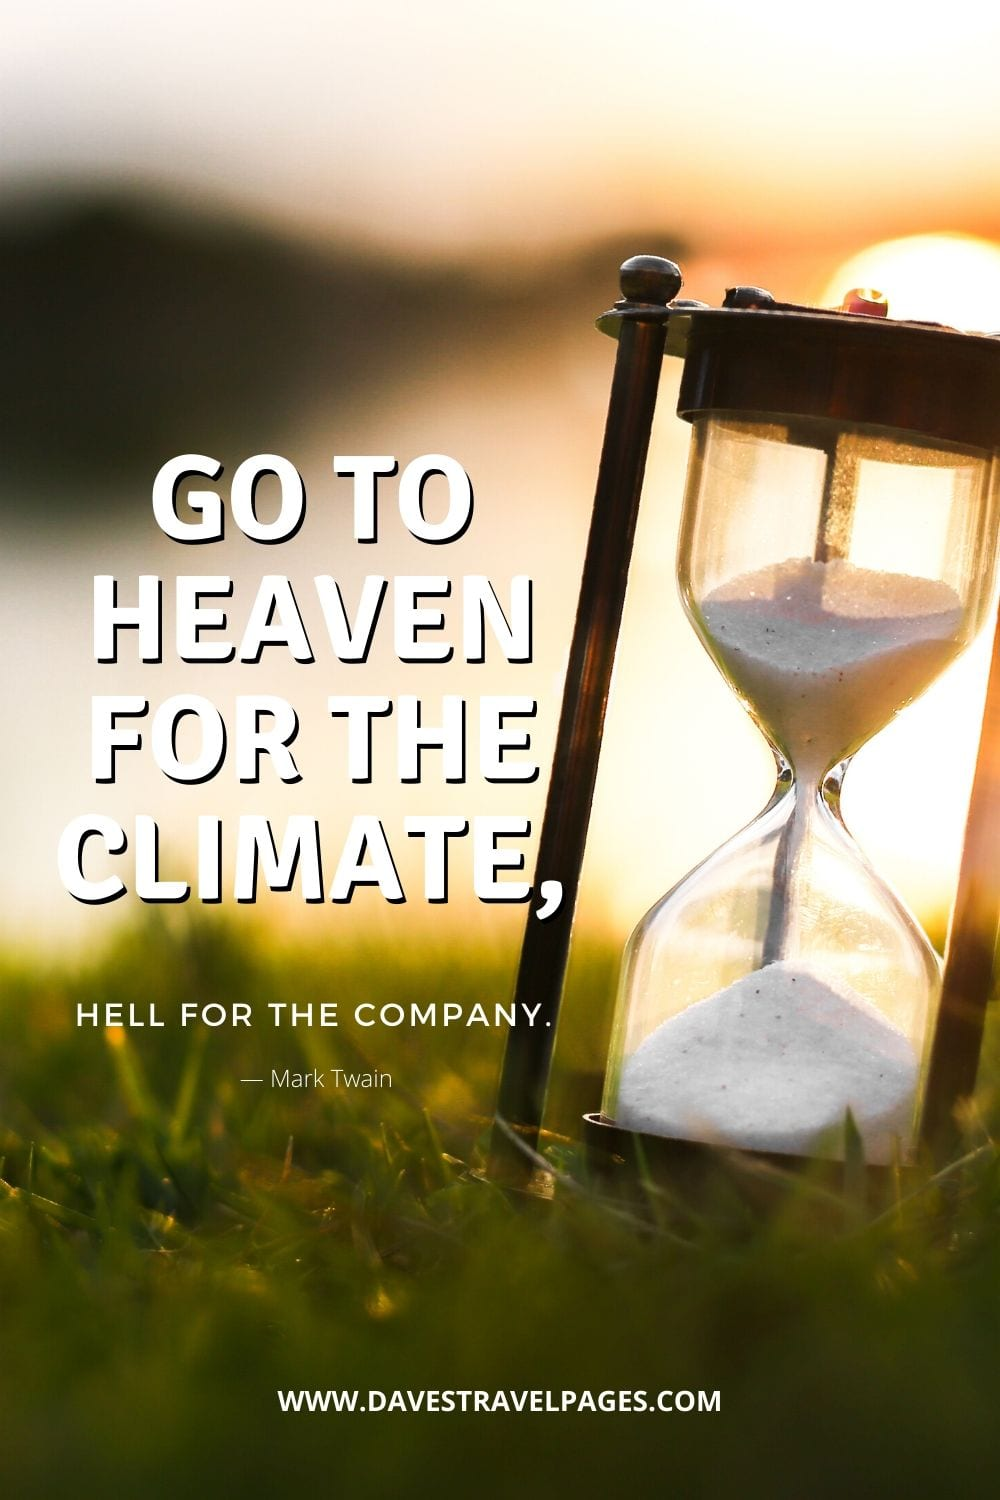 Funny quotation by Mark Twain: Go to Heaven for the climate, Hell for the company.